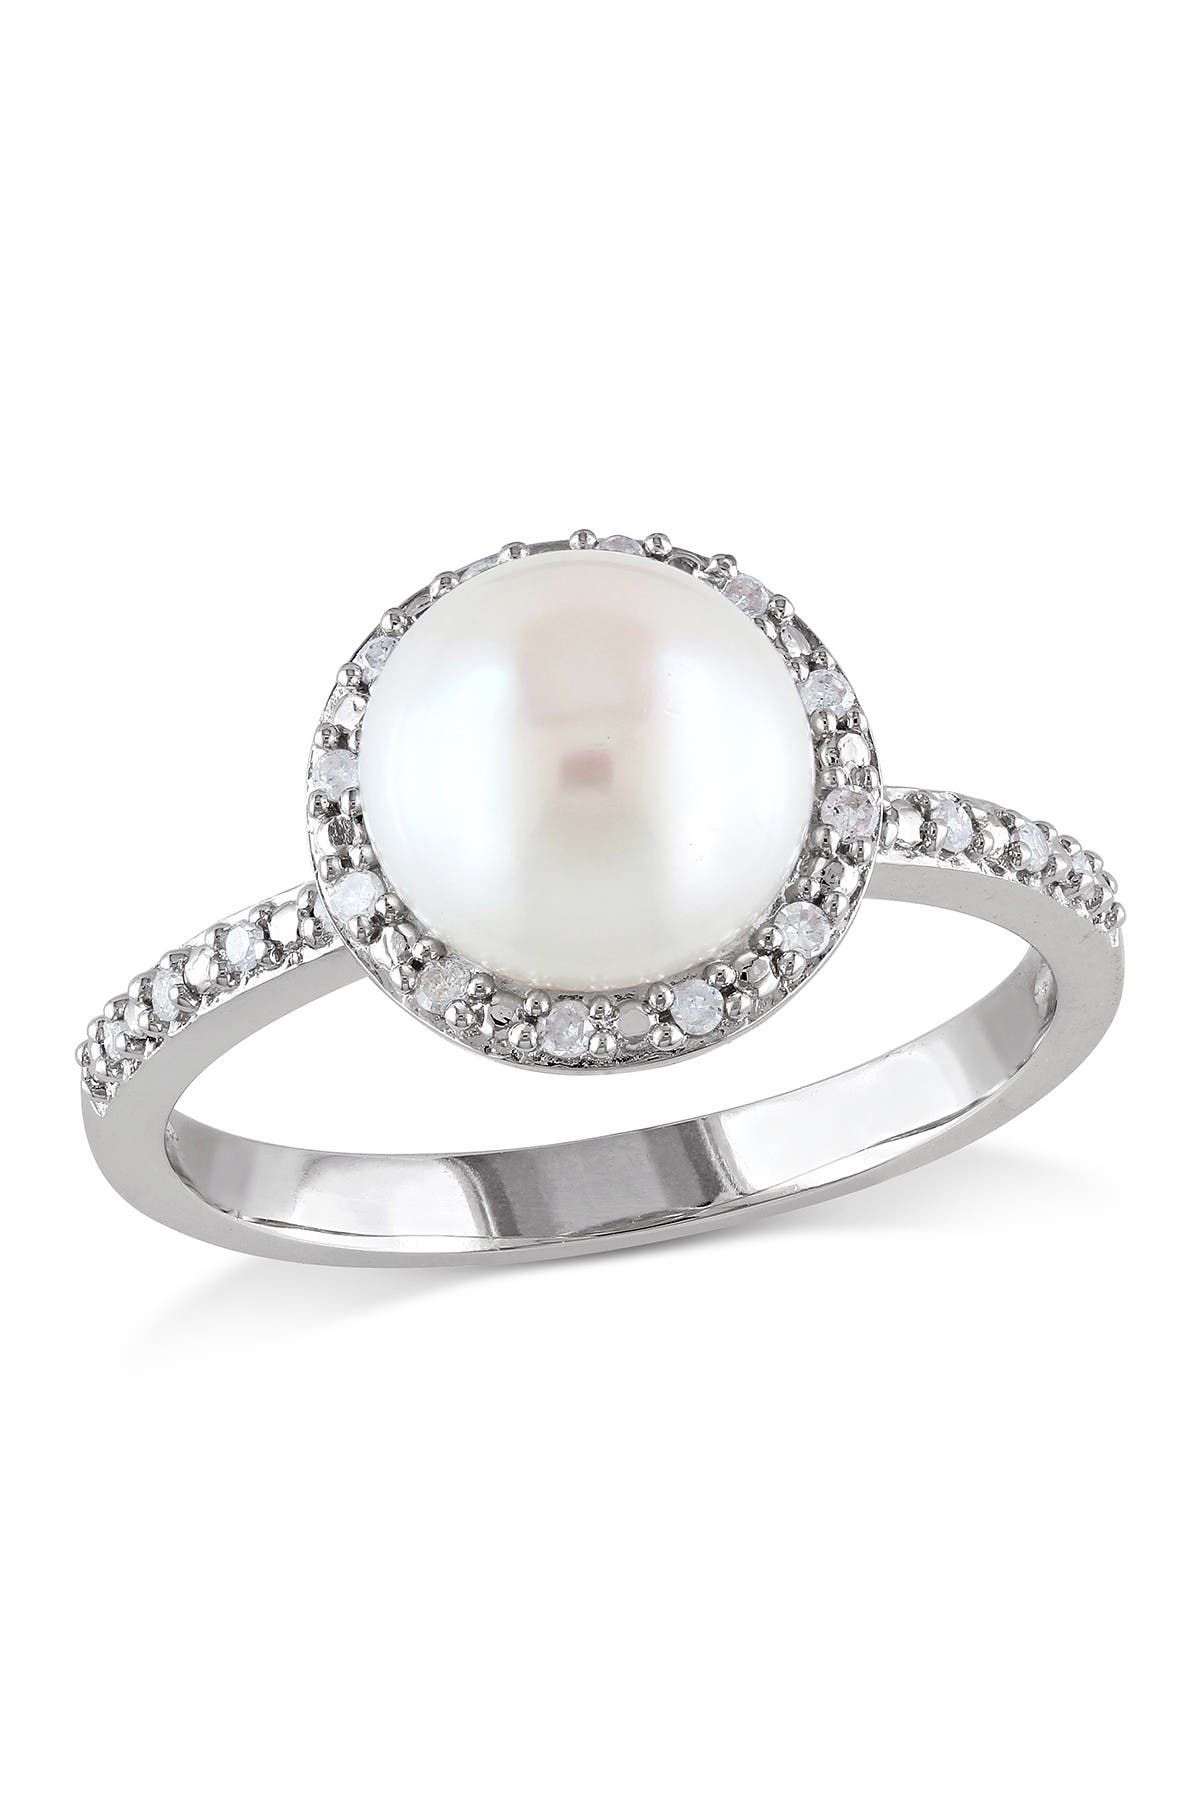 Image of Delmar Sterling Silver 8-8.5mm White Freshwater Pearl & Diamond Halo Ring